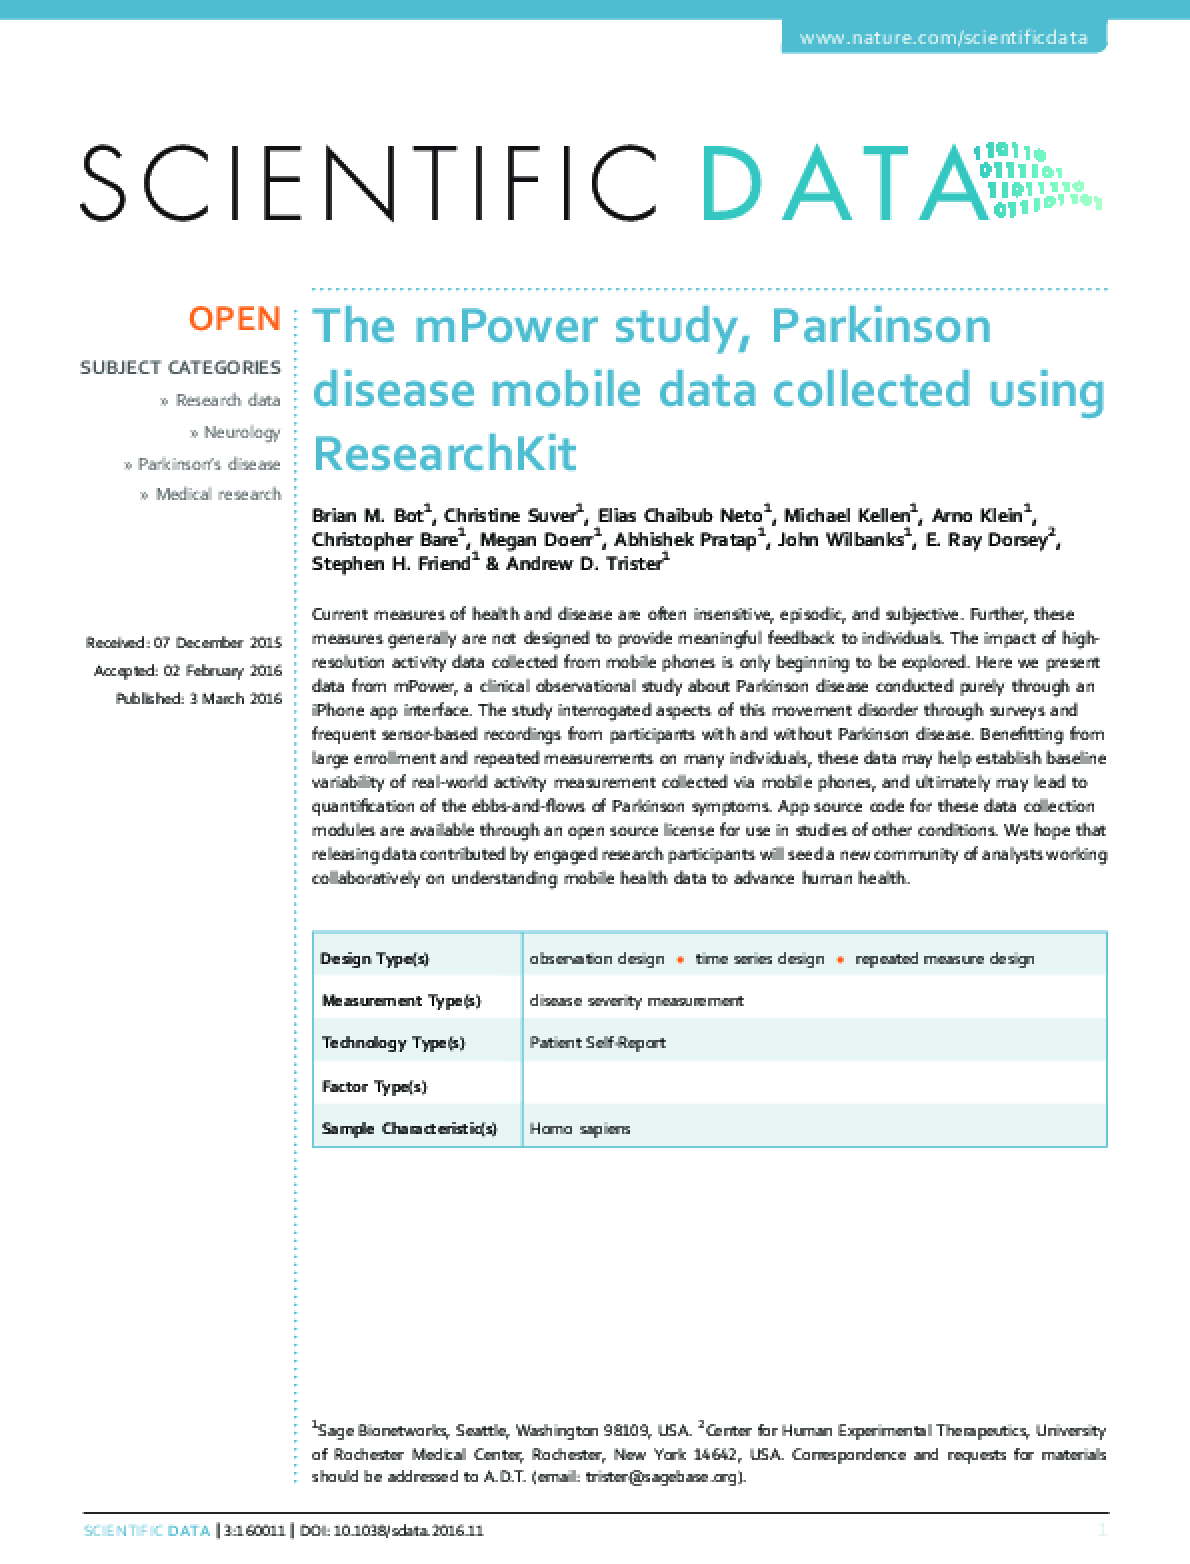 The mPower Study, Parkinson Disease Mobile Data Collected Using Researchkit